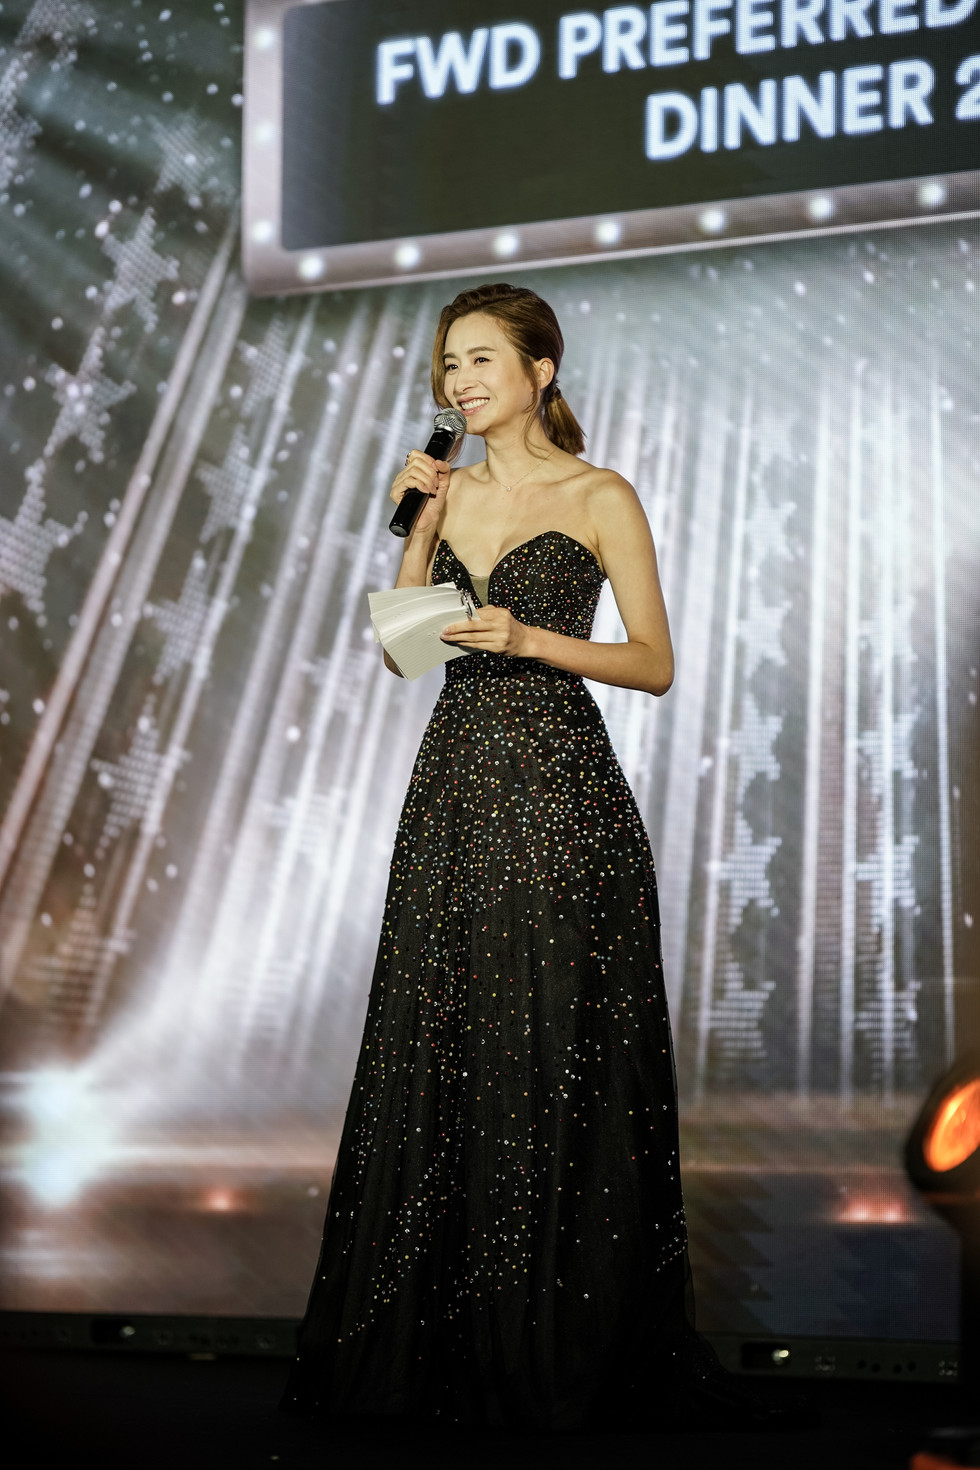 Asian female MC in black dress announcement on stage